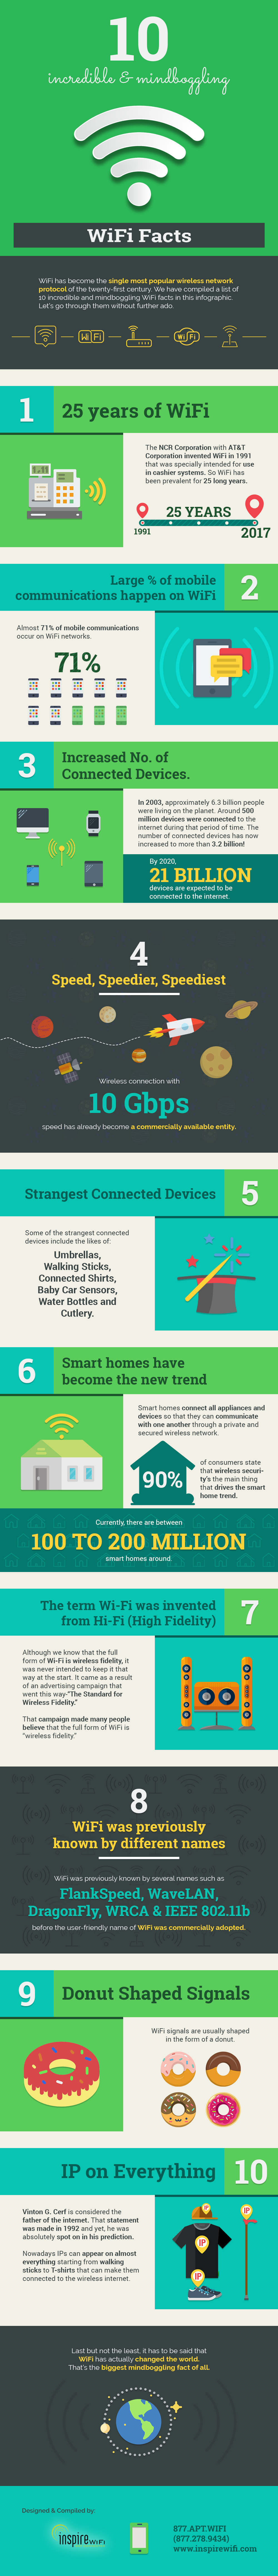 Wi-Fi Protocol in the 21st Century: 10 Incredible Facts - Infographic